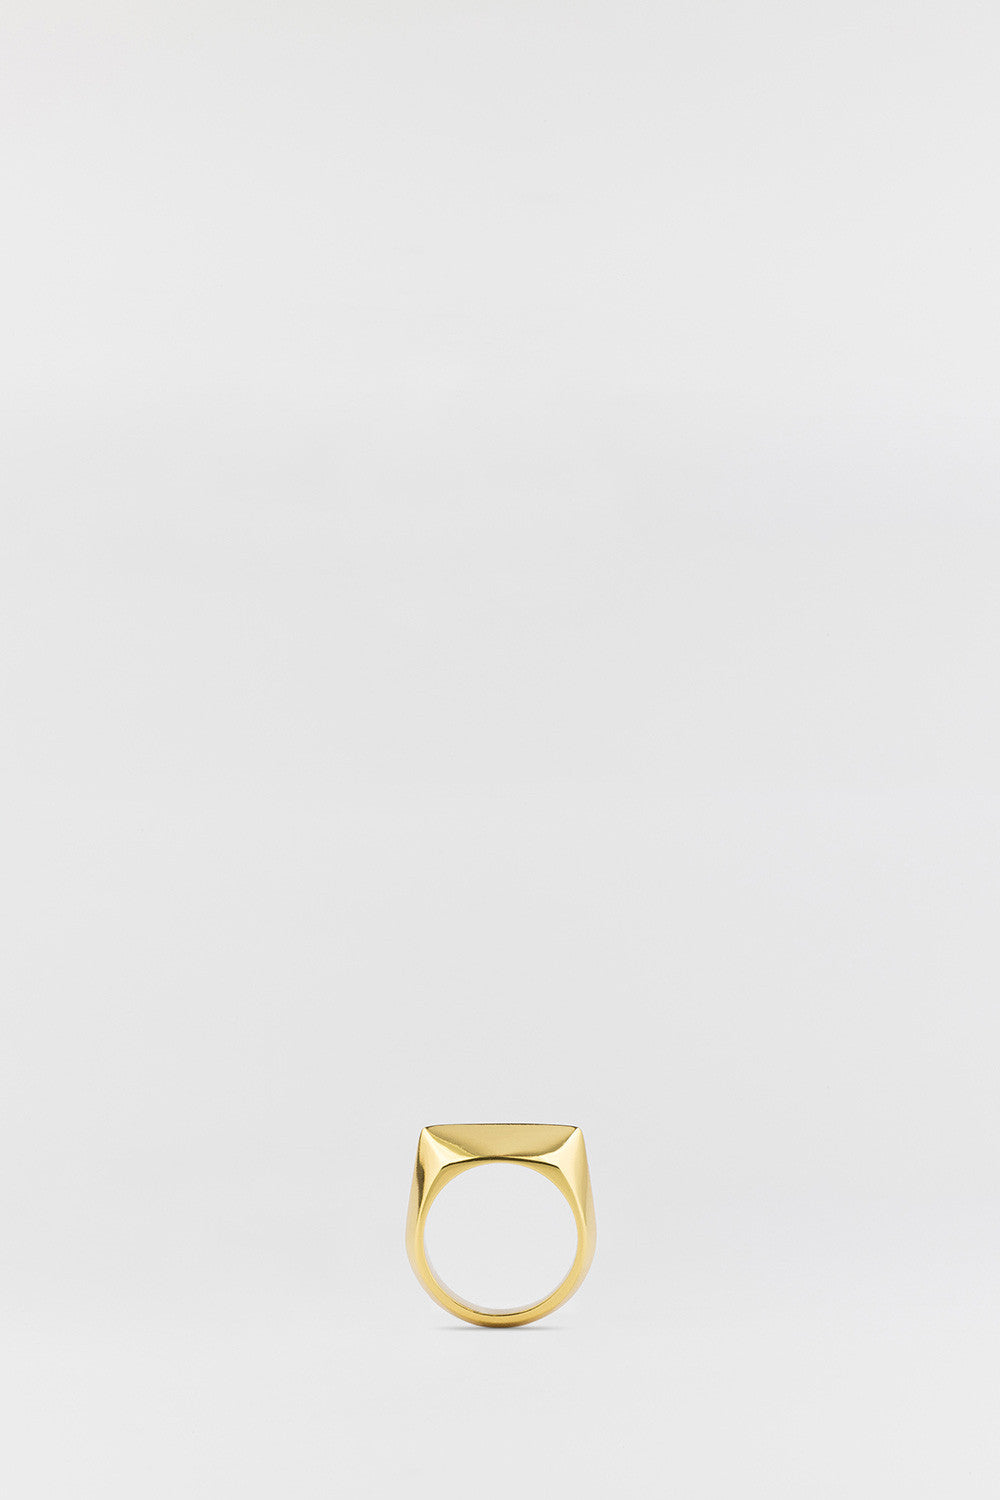 Flat Bevel Signet Ring Gold